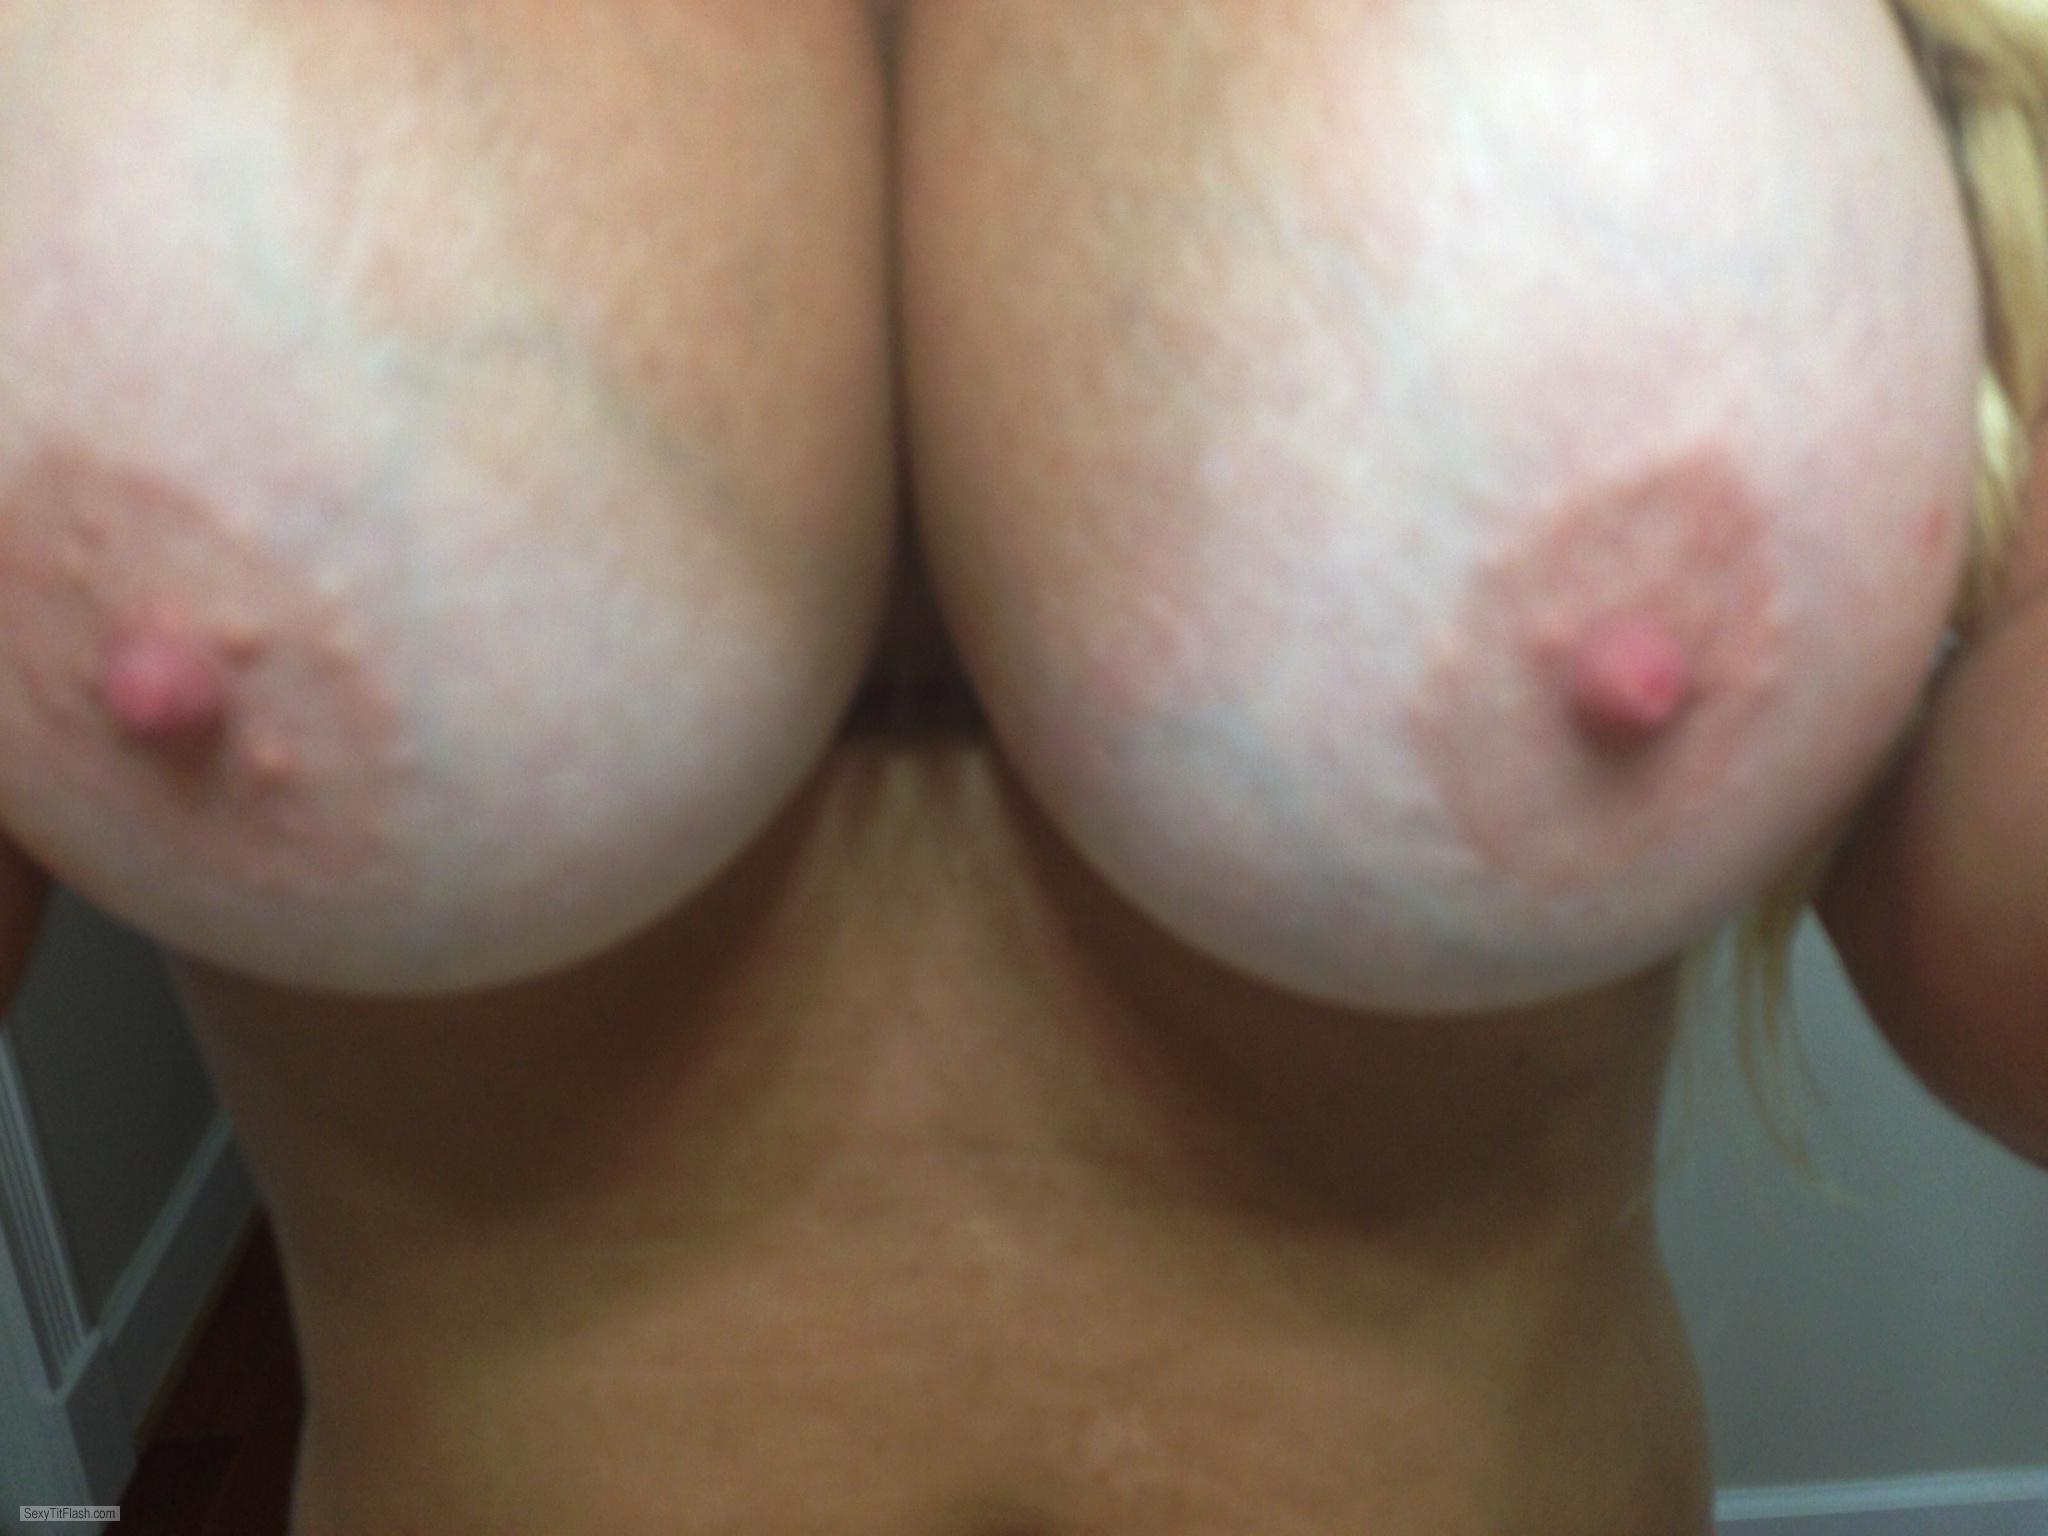 Very big Tits Of My Wife Selfie by Wifey